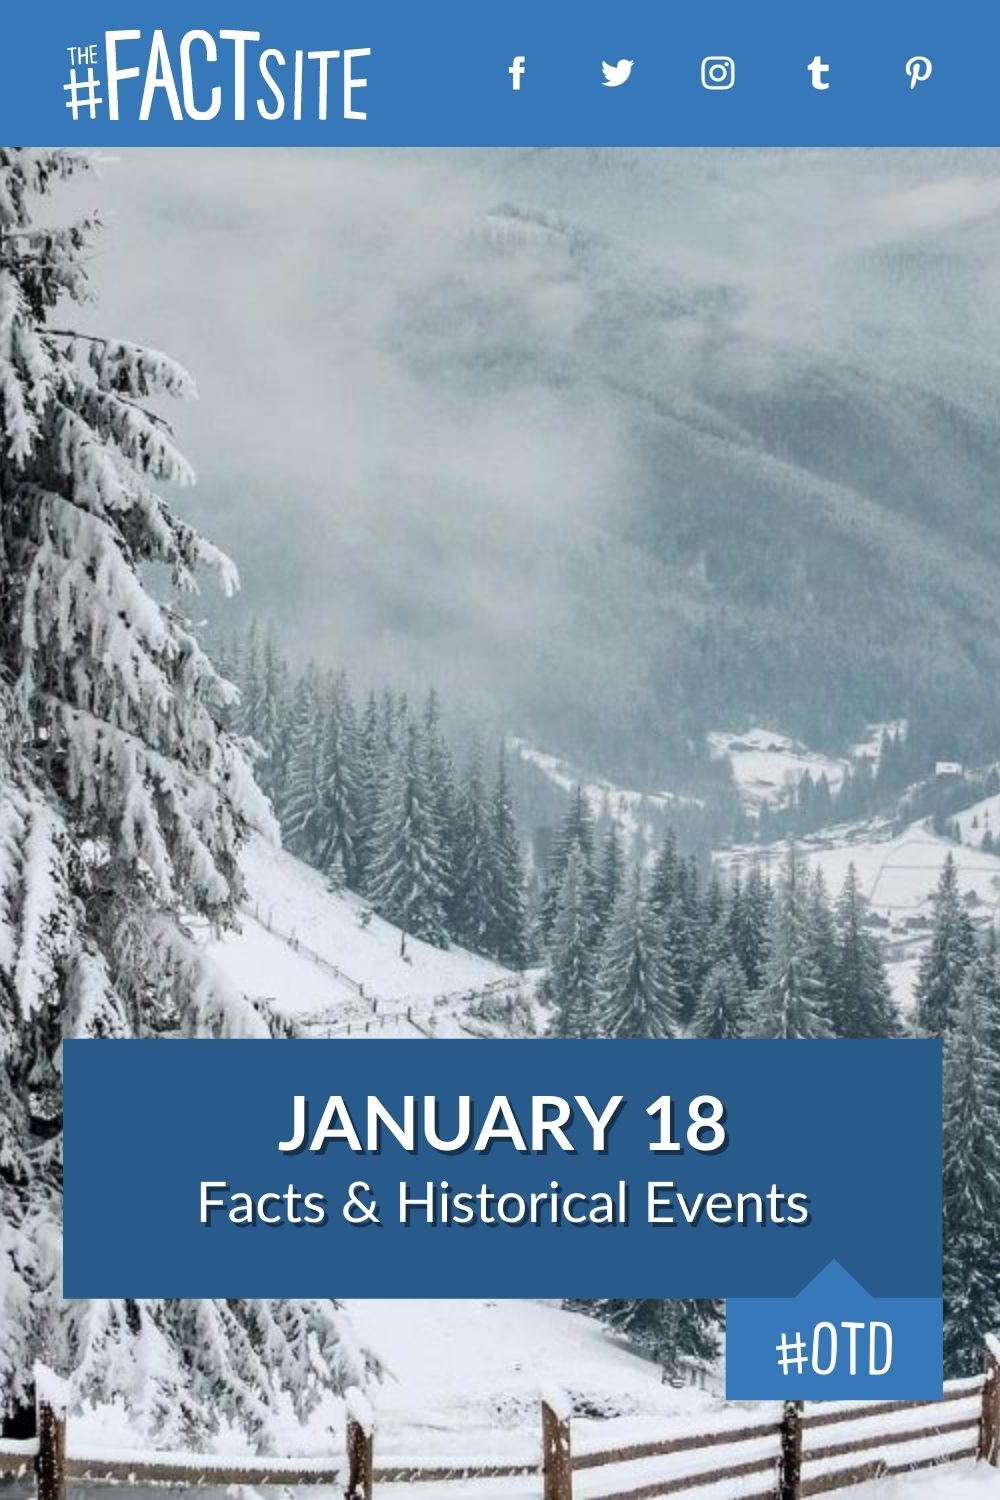 Facts & Historic Events That Happened on January 18